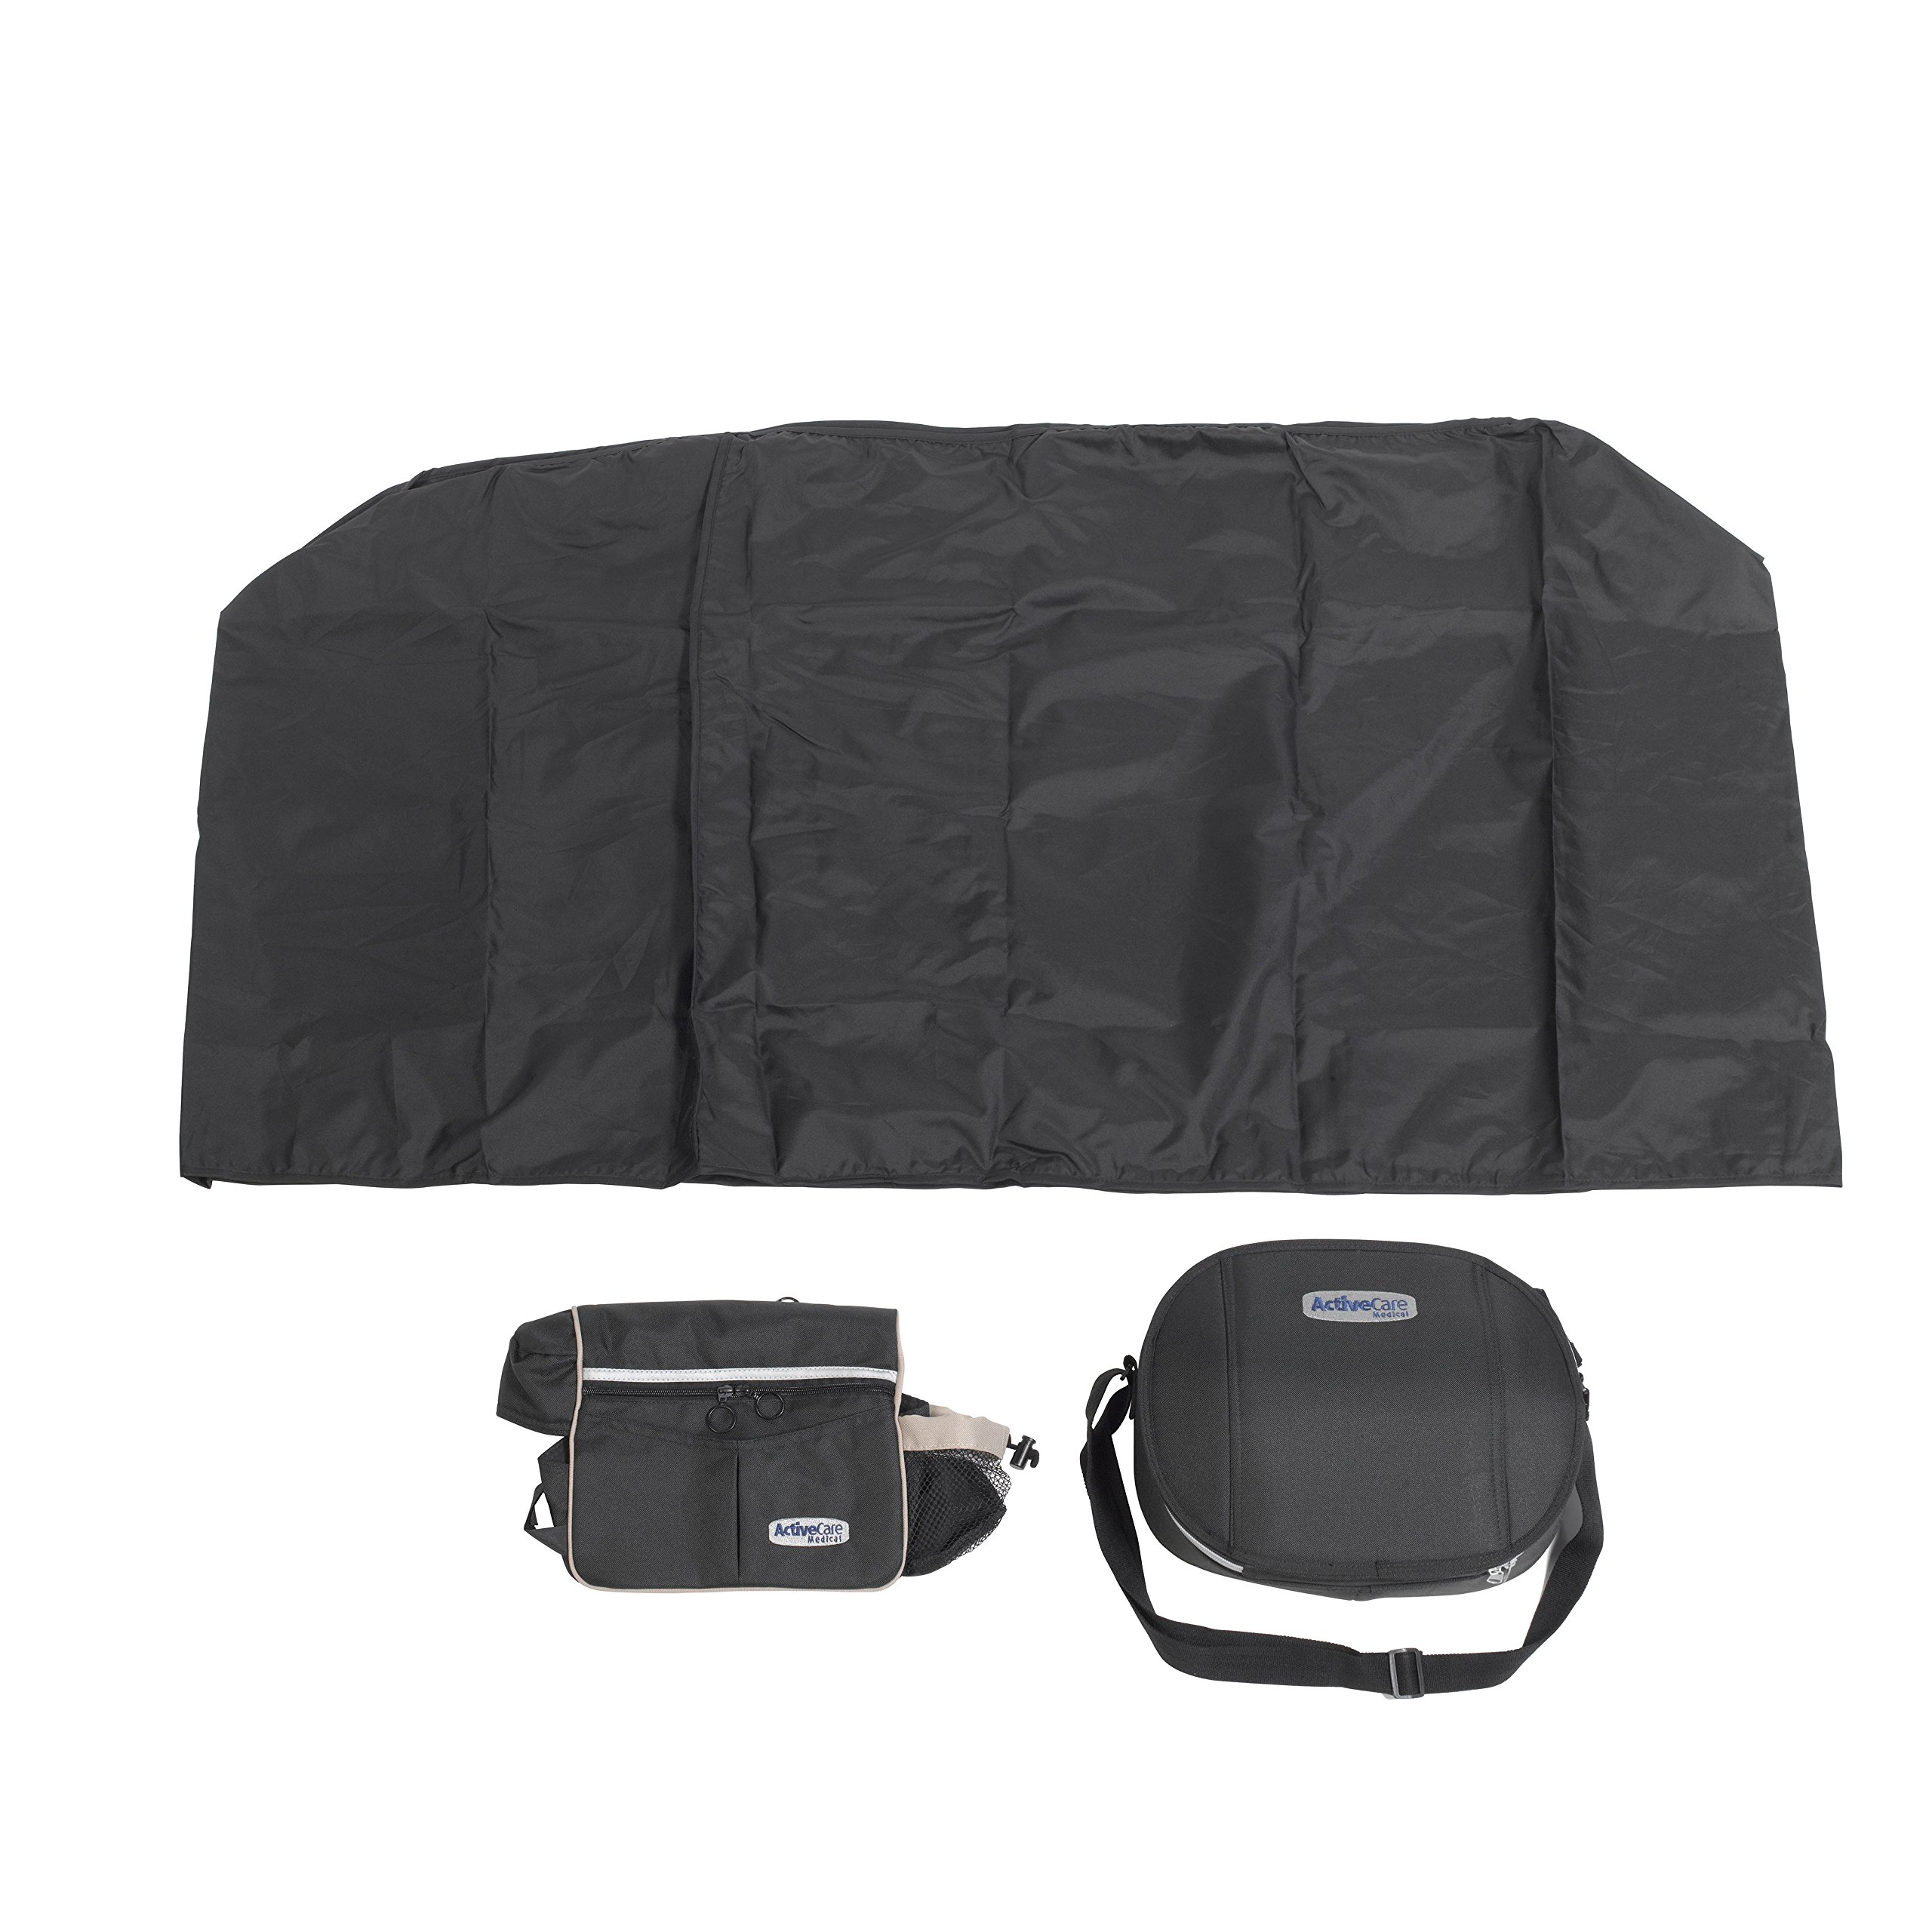 Drive Medical Acckit Scooter Accessory Kit, Black by Drive Medical